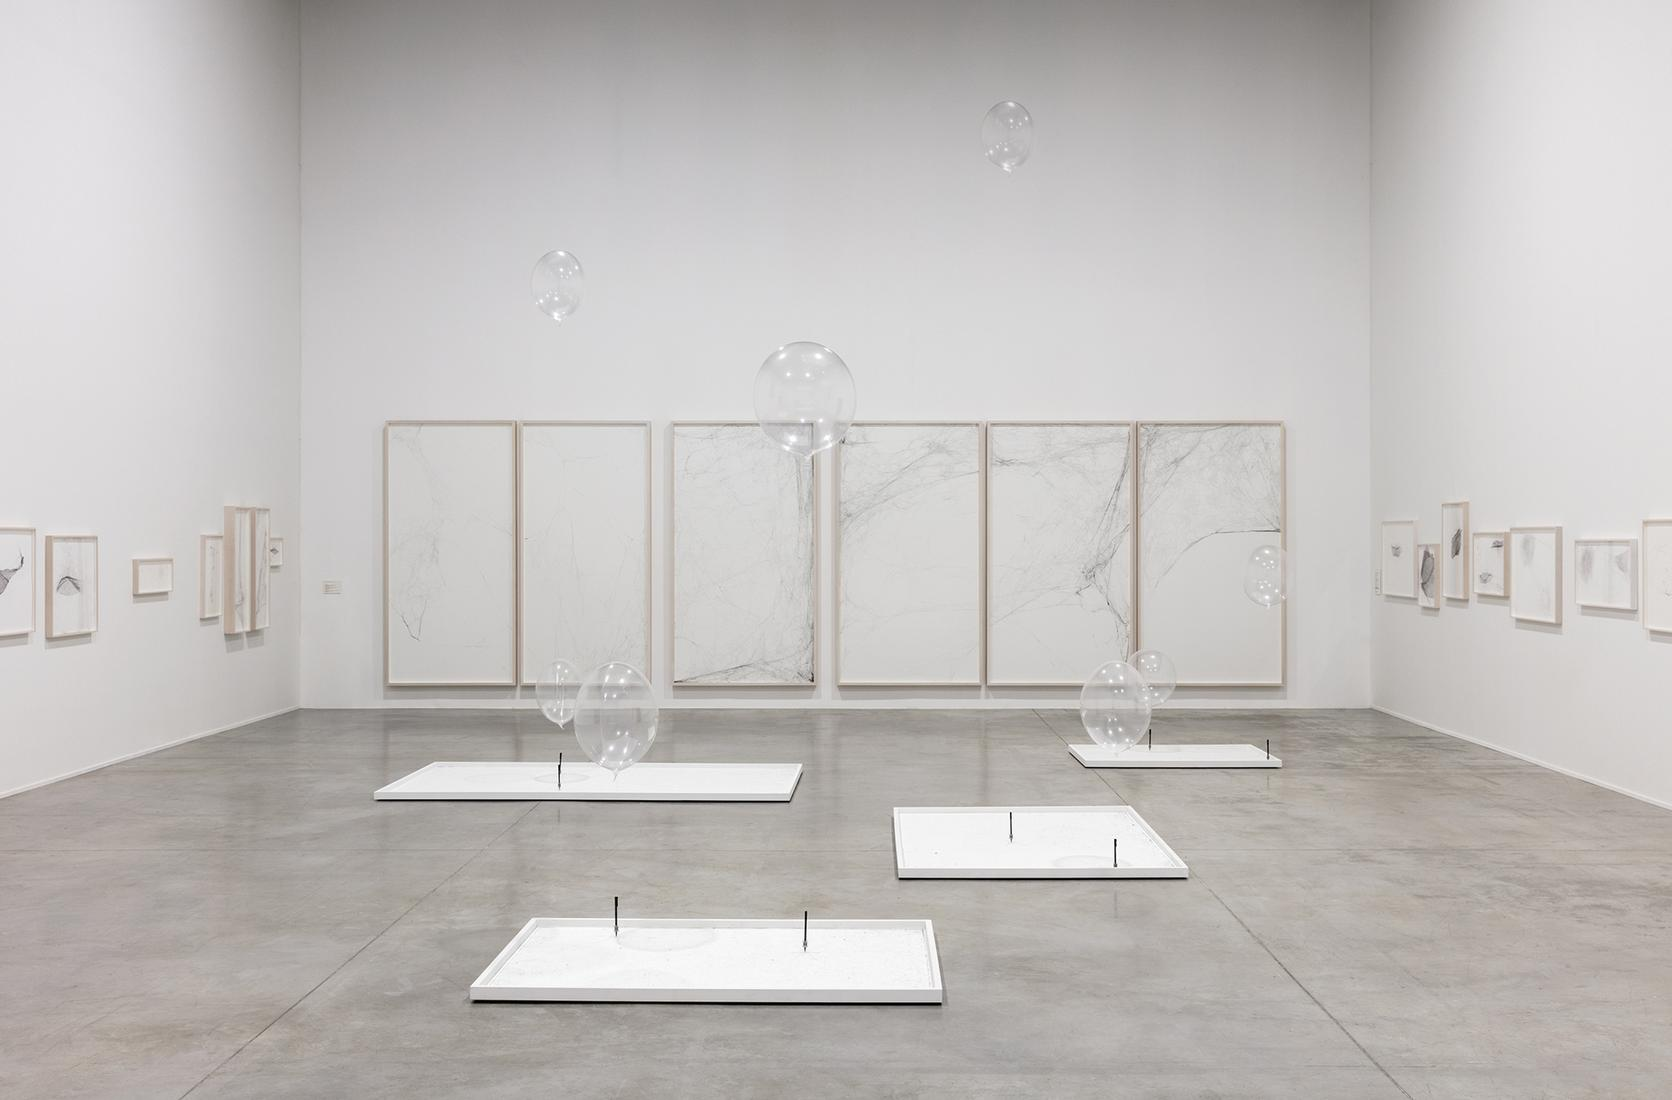 This is an installation images of Tomas Saraceno's...